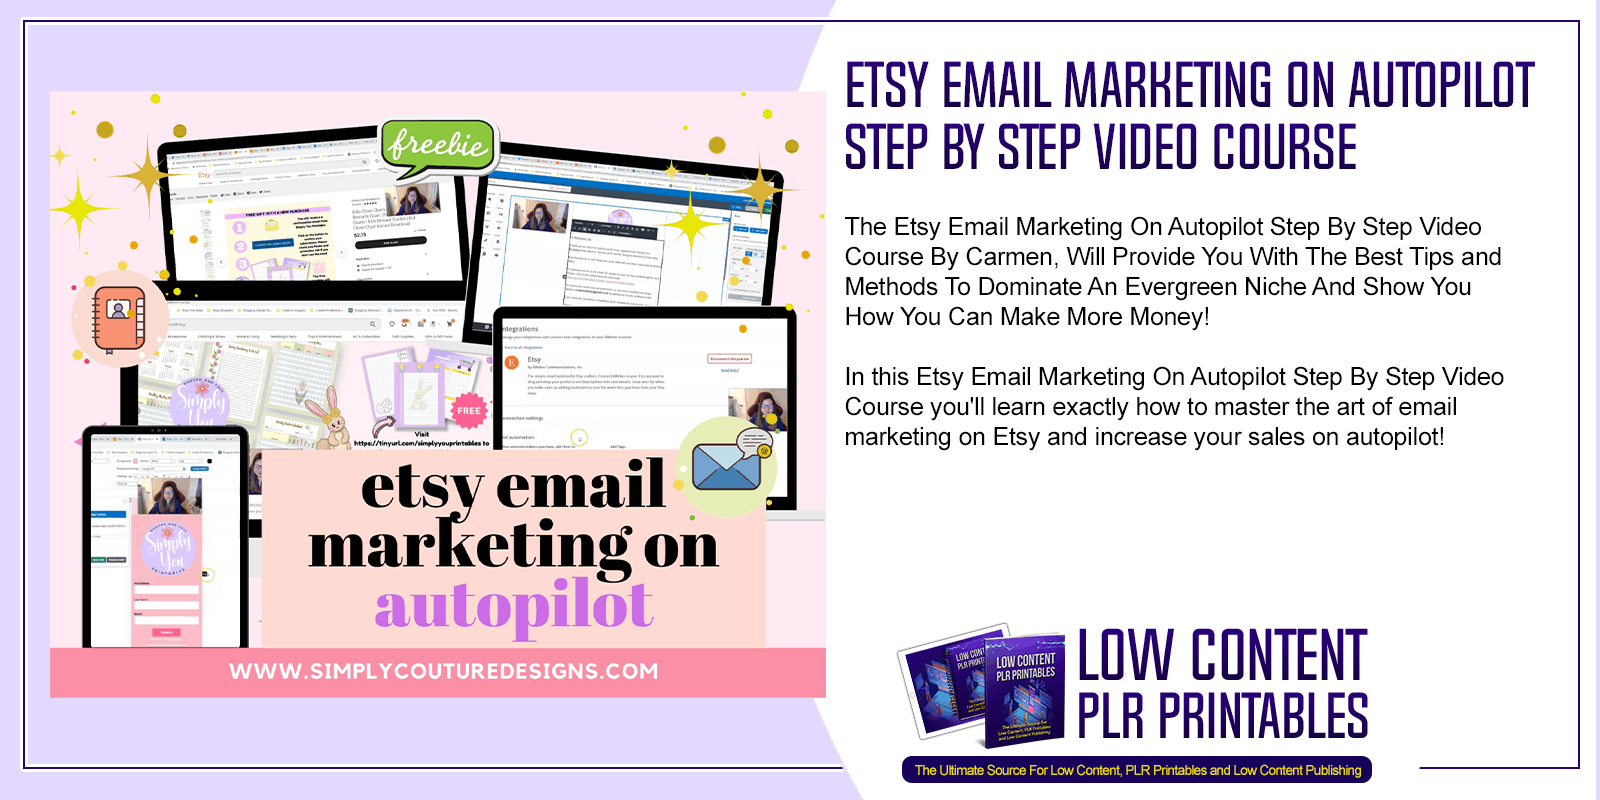 Etsy Email Marketing On Autopilot Step By Step Video Course